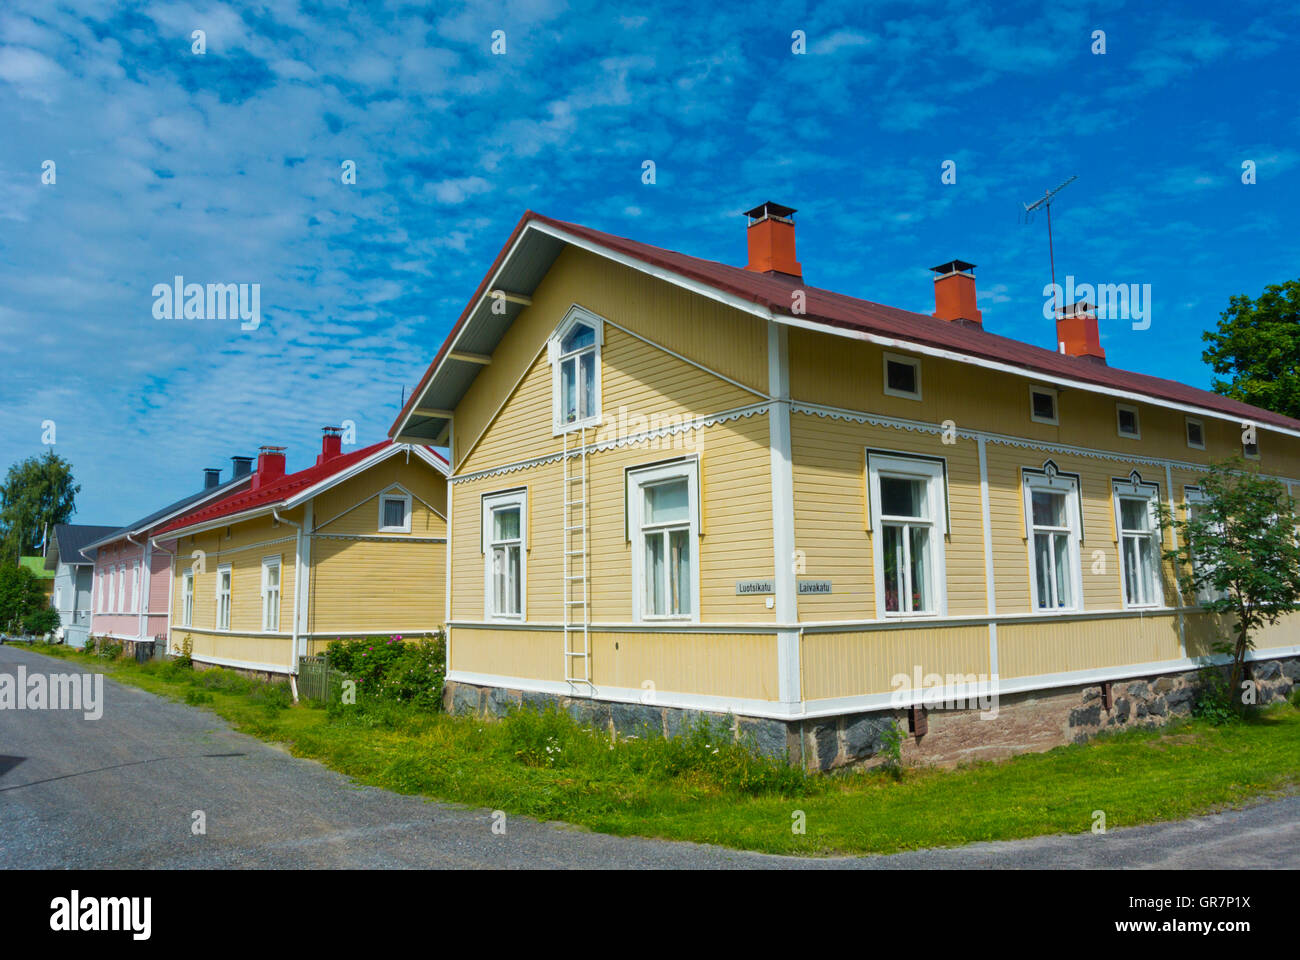 Reposaari, island with wooden houses, Pori, western Finland - Stock Image